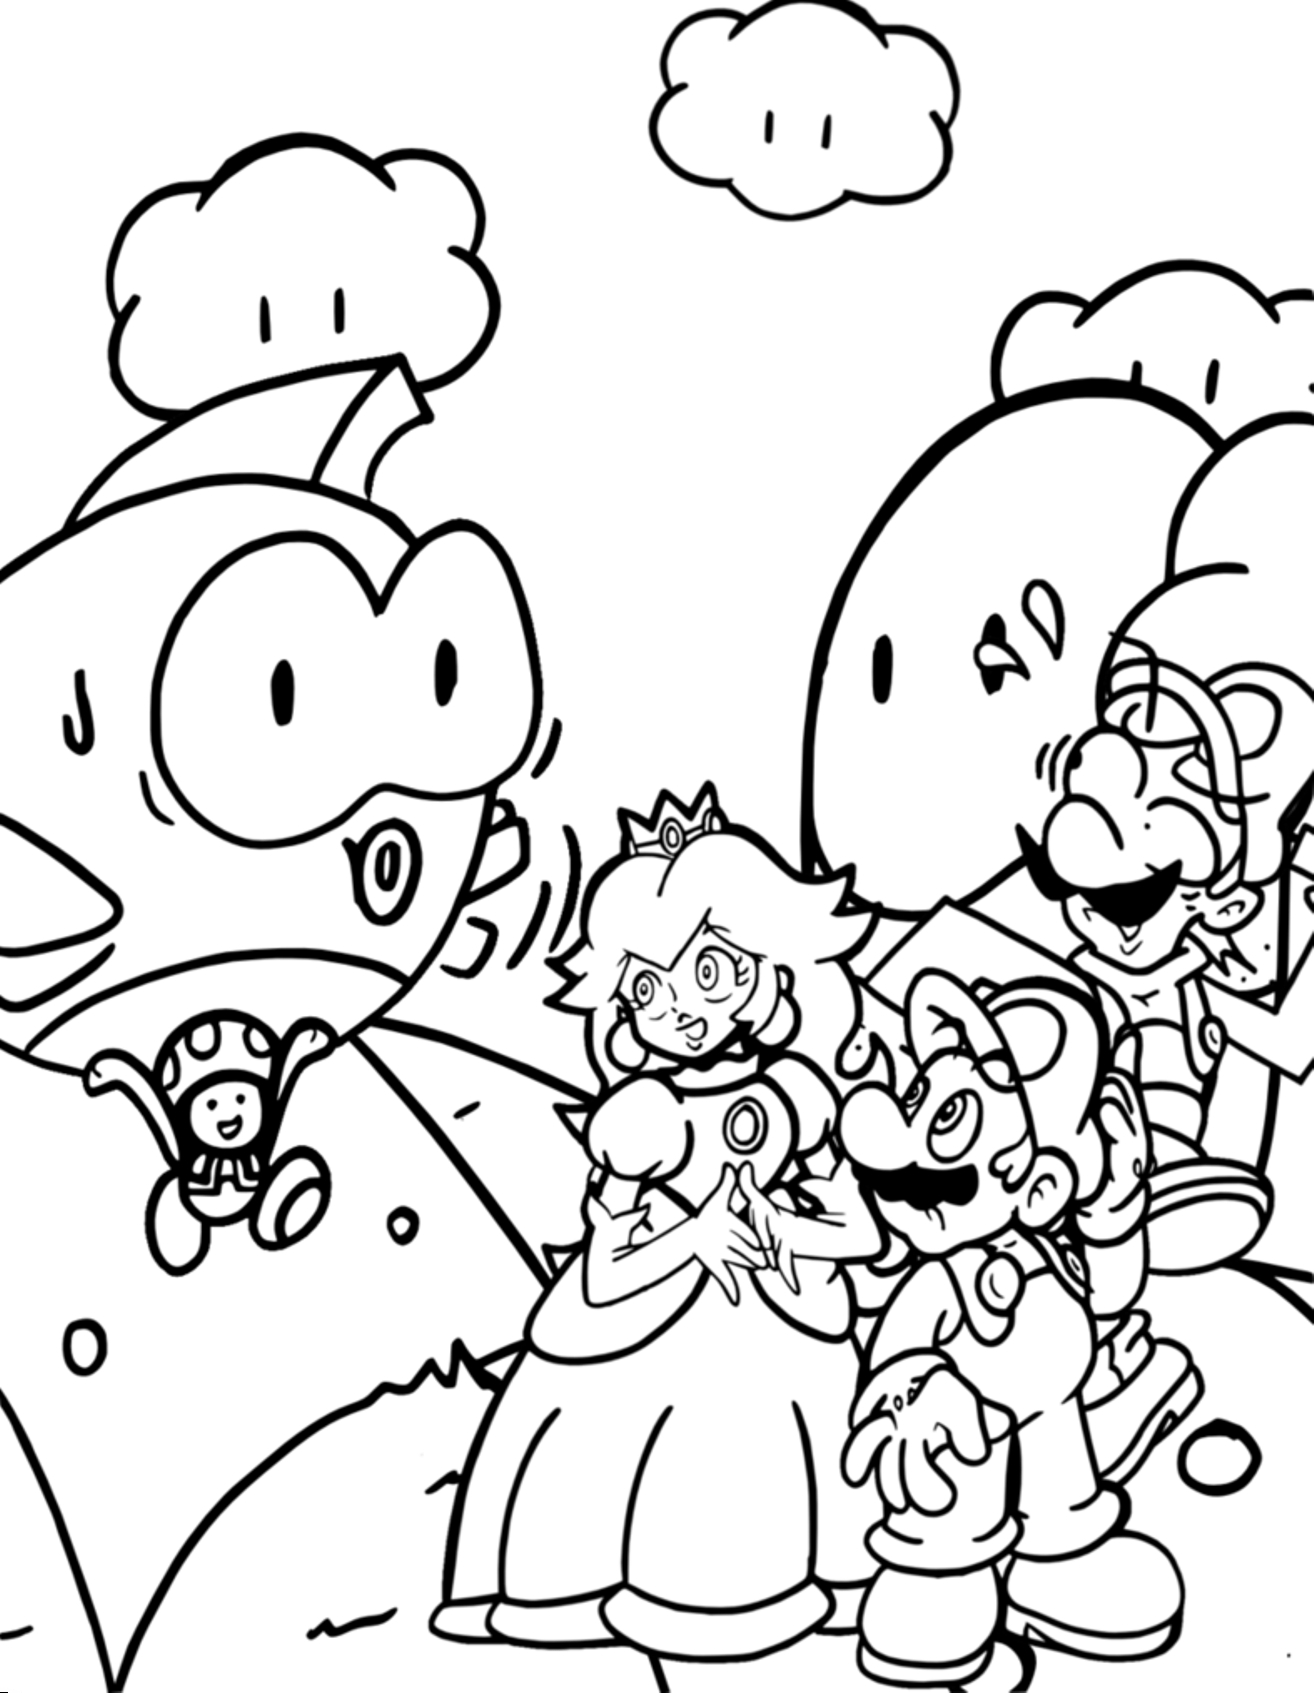 Free Mario Coloring Pages Coloring Pages Gallery Of Super Mario Bros Coloring Pages to Print